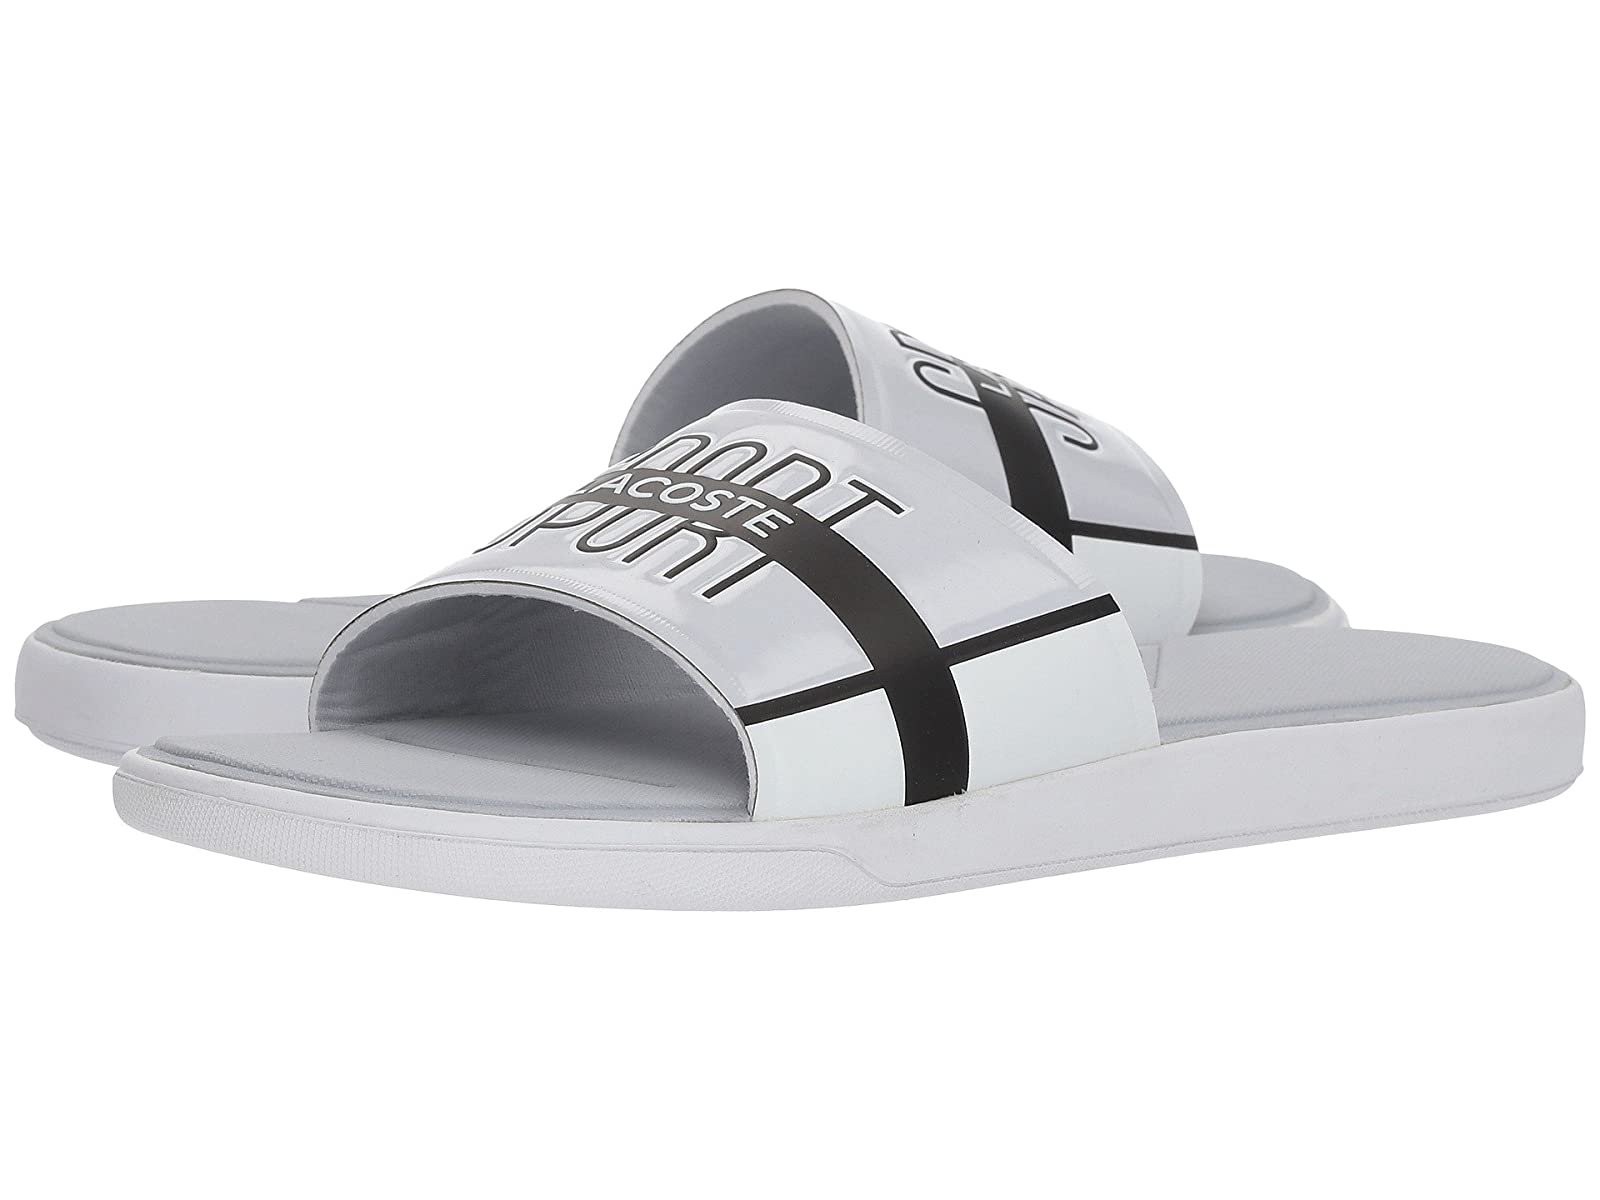 Lacoste L.30 Slide 218 2Atmospheric grades have affordable shoes